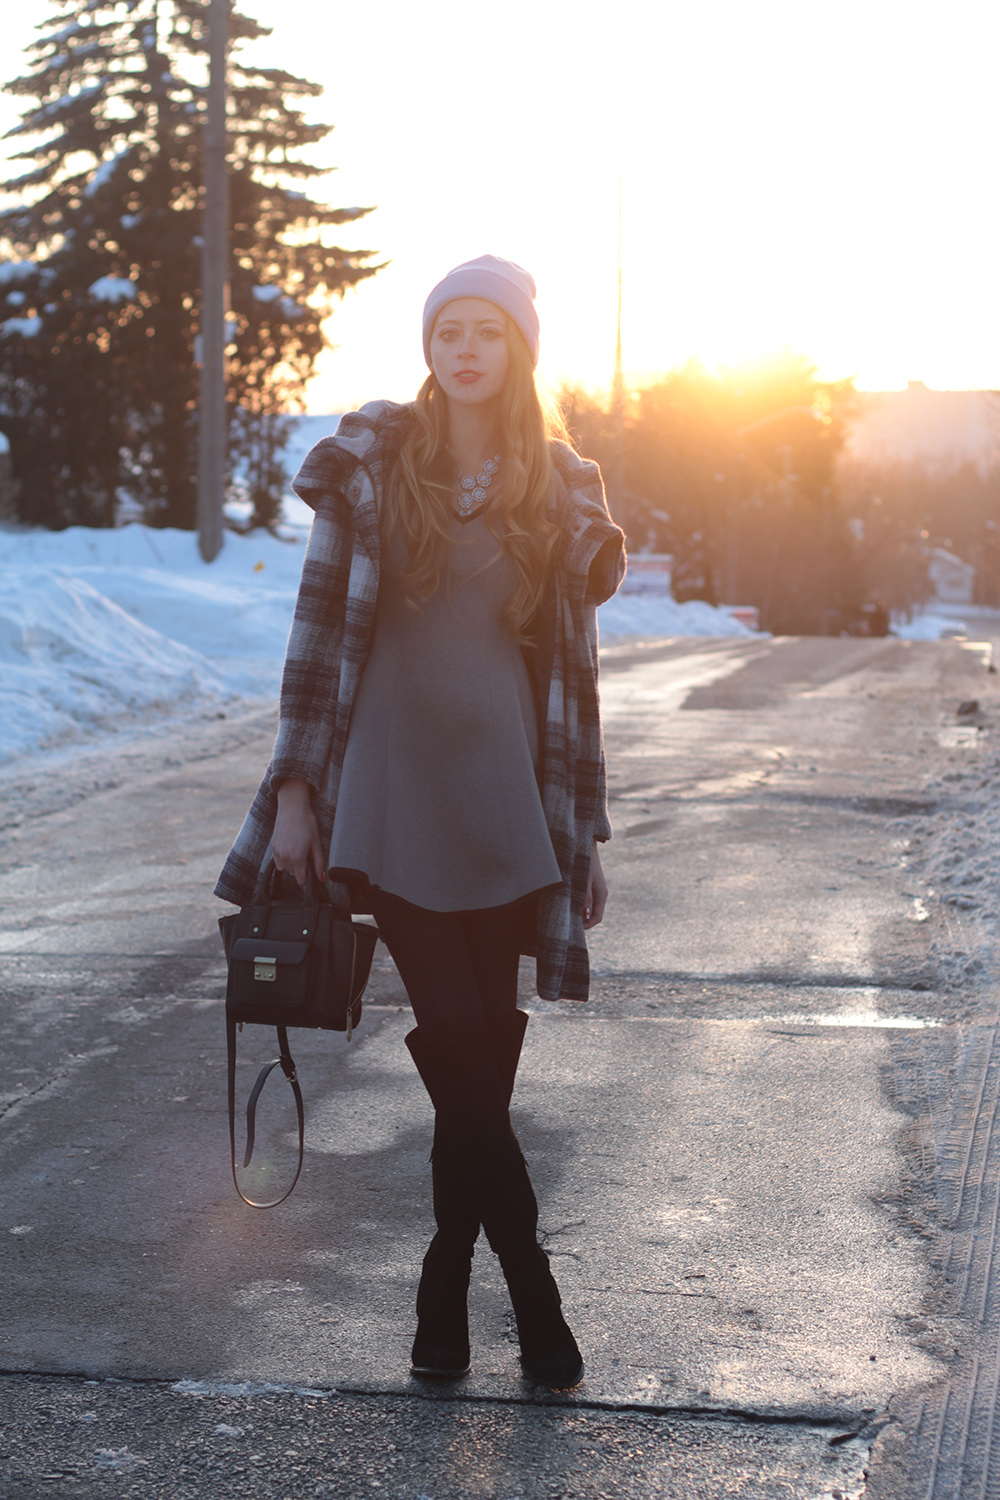 winter sunset outfit